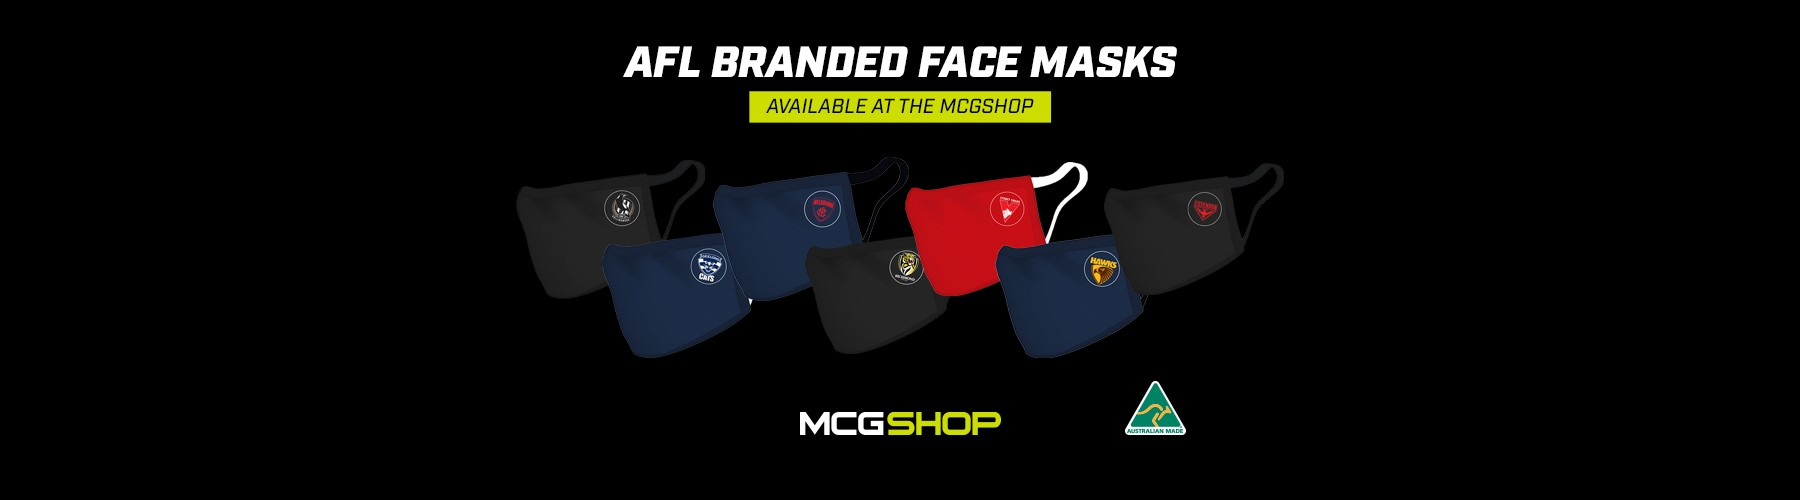 AFL branded face masks